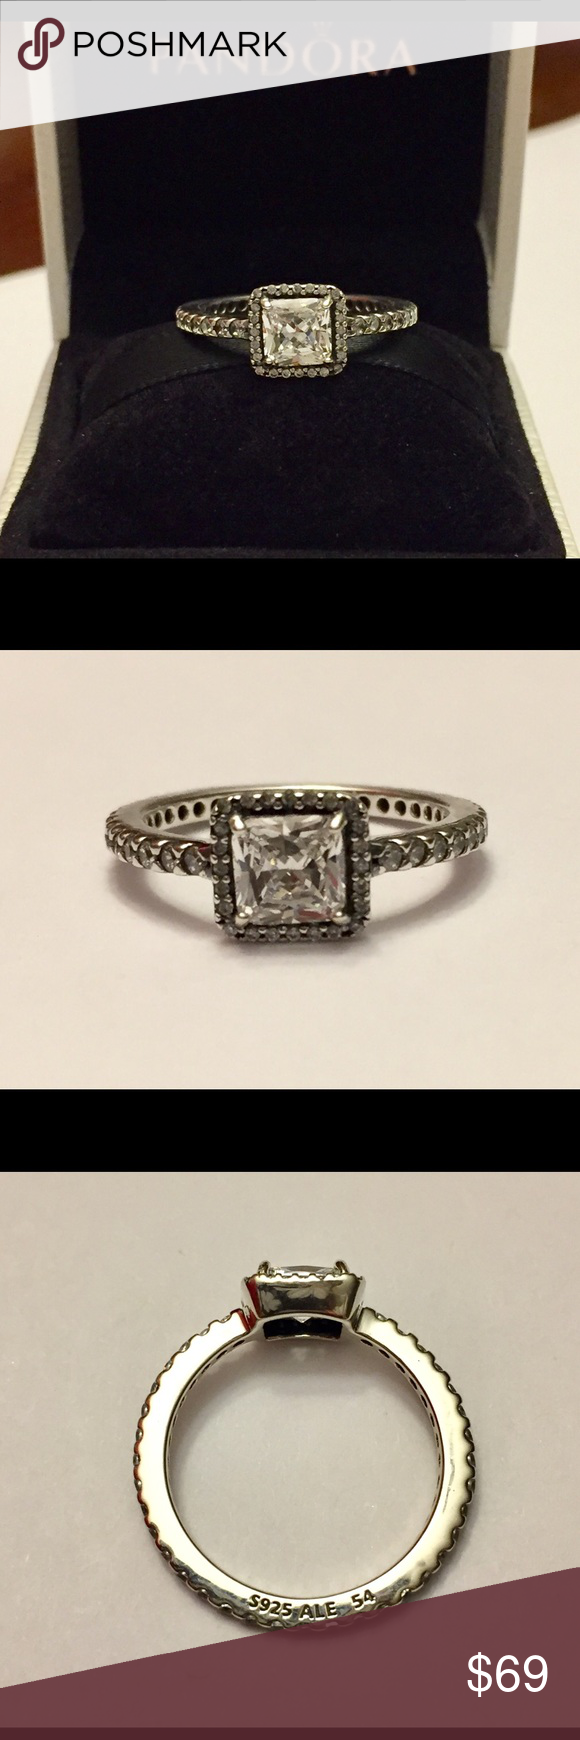 a4f0feb6f Authentic Pandora Timeless Elegance Ring size 7-54 Sterling Silver with  Cz's. Hallmark Stamp S 925 ALE. The Pandora Hinged Box is included. No  Trading.